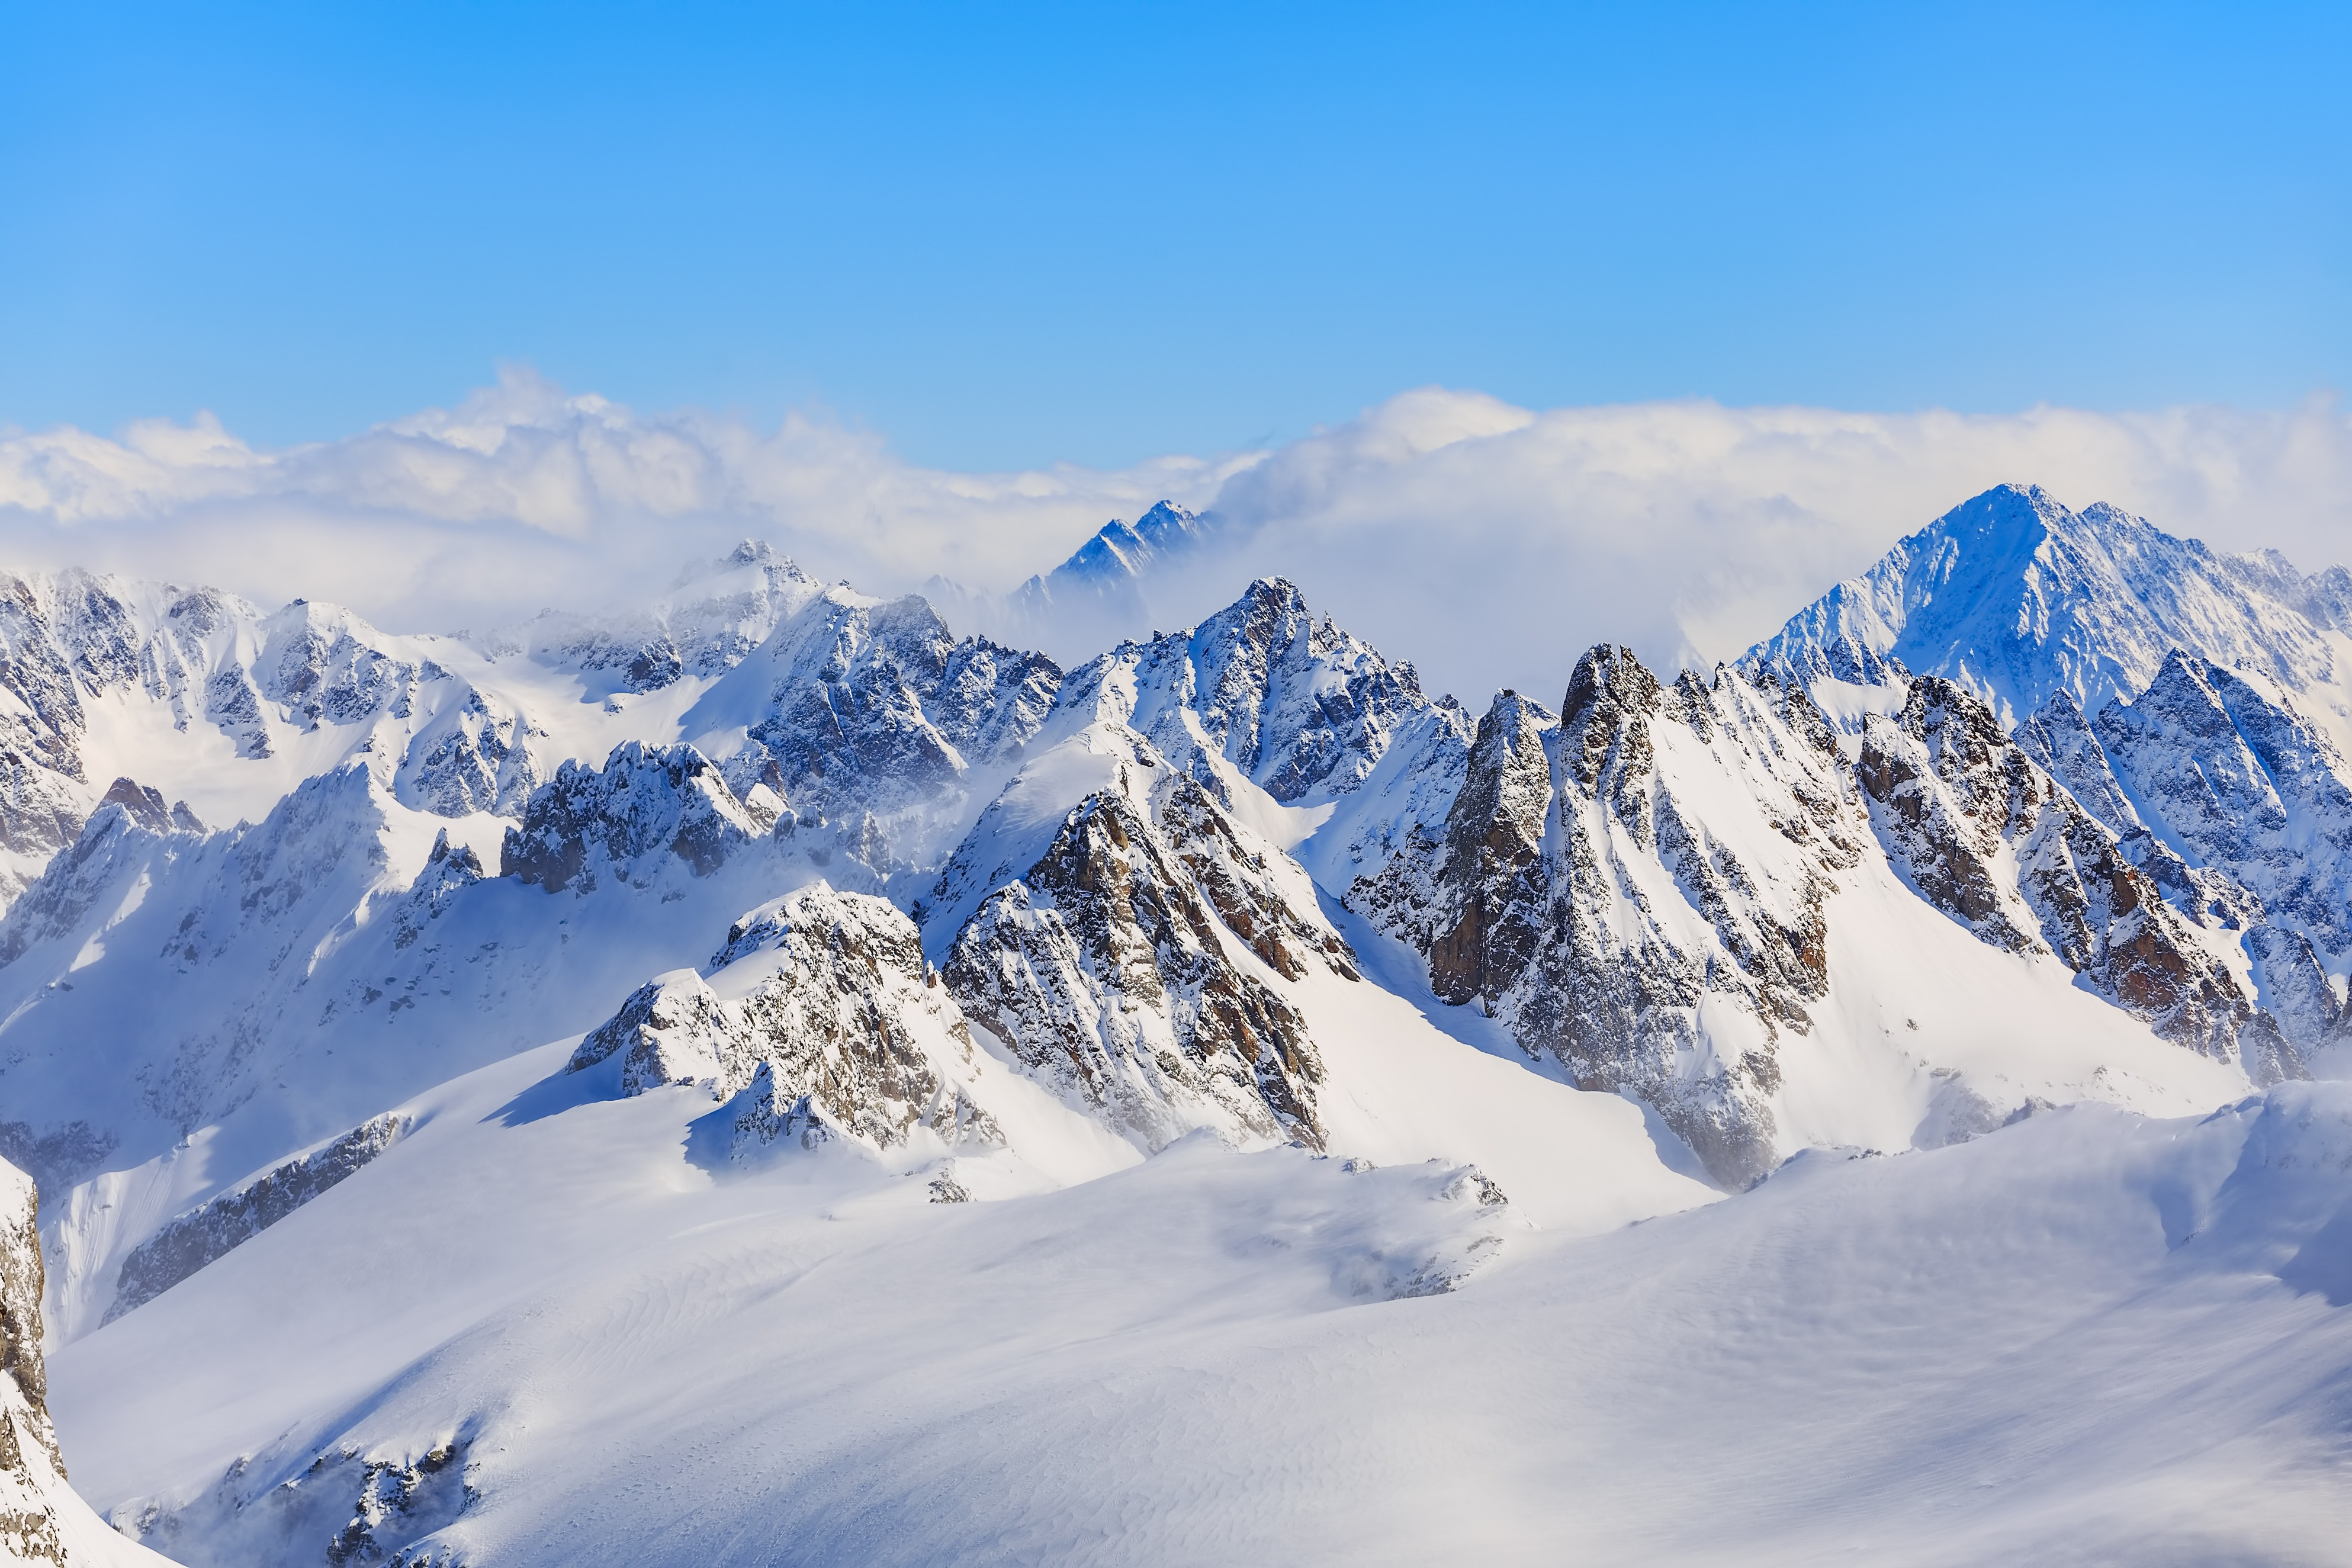 Mountain Ranges Covered in Snow, Adventure, Pinnacle, Resort, Rocky, HQ Photo